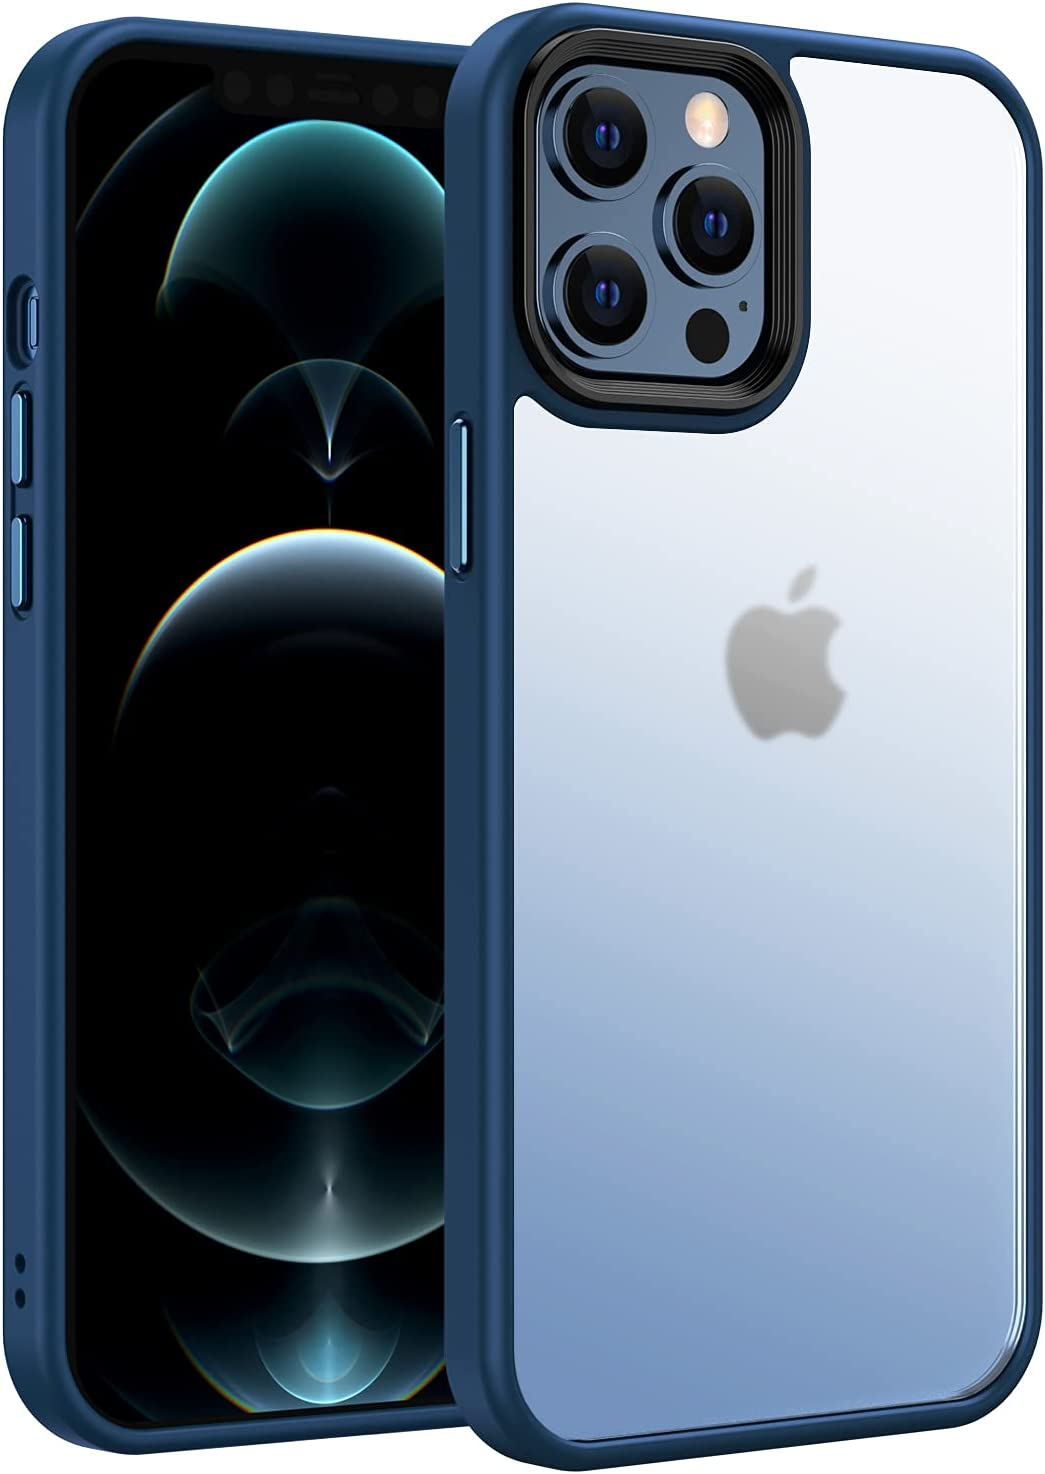 Saputu Compatible with iPhone 12 Pro Max Case, [Independent Aluminum Alloy Buttons] Translucent Matte Hard PC backplane and Soft TPU Protective Frame, Military Grade Anti-Drop (Pacific Blue)